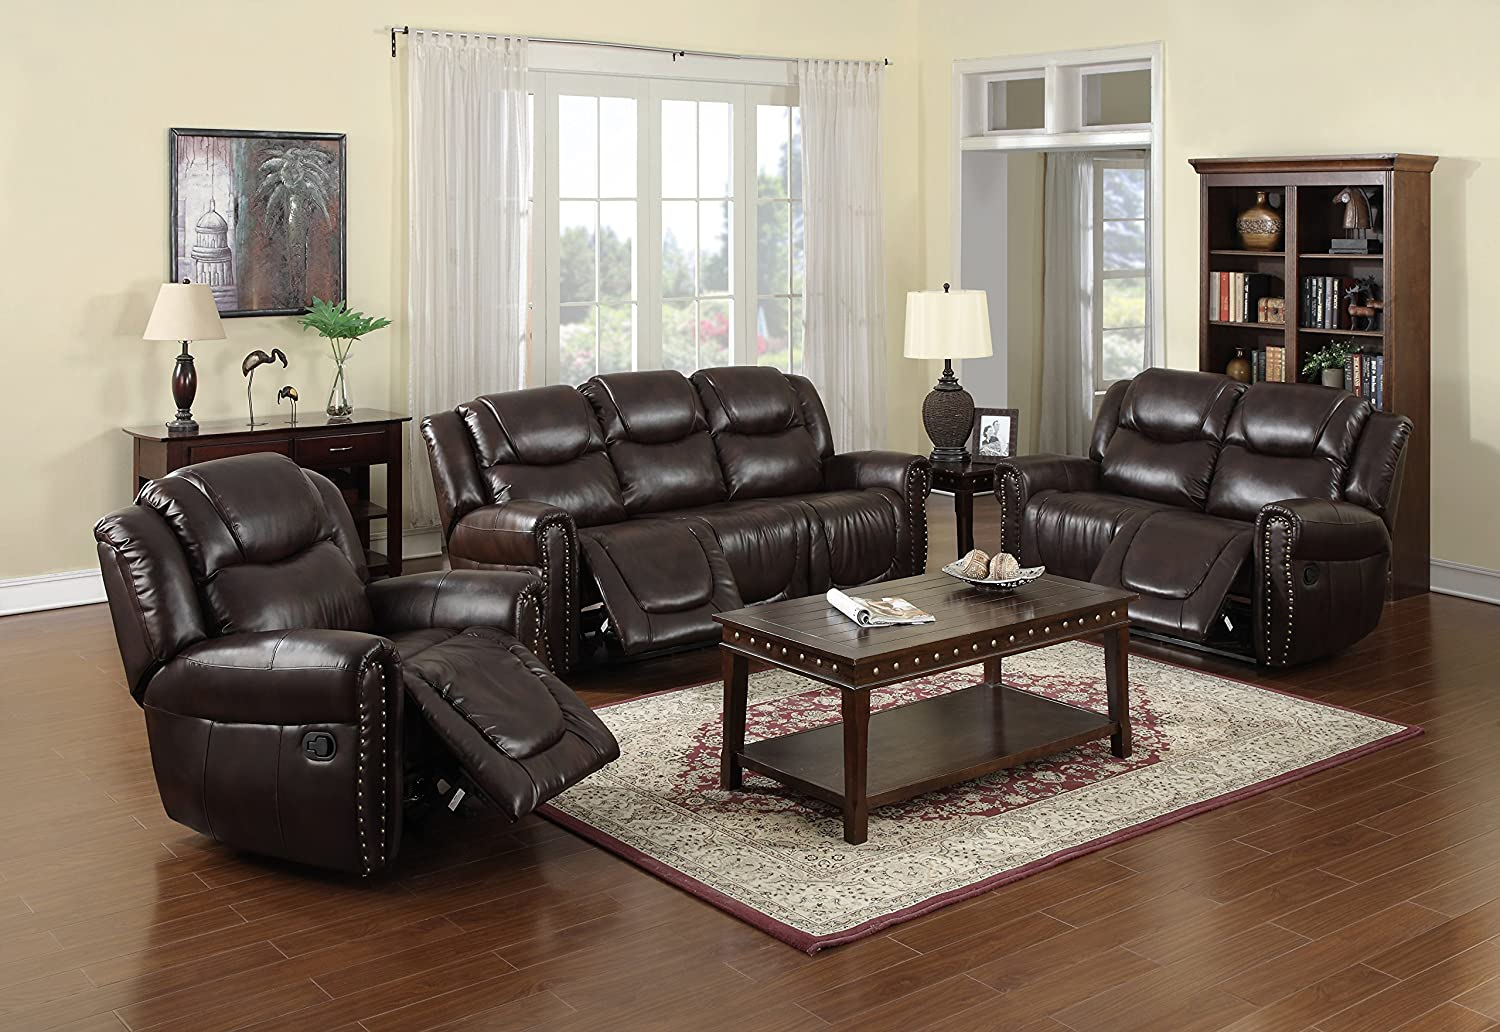 Best luxurious sofa sets reviews for living room of villa for Best living room furniture reviews